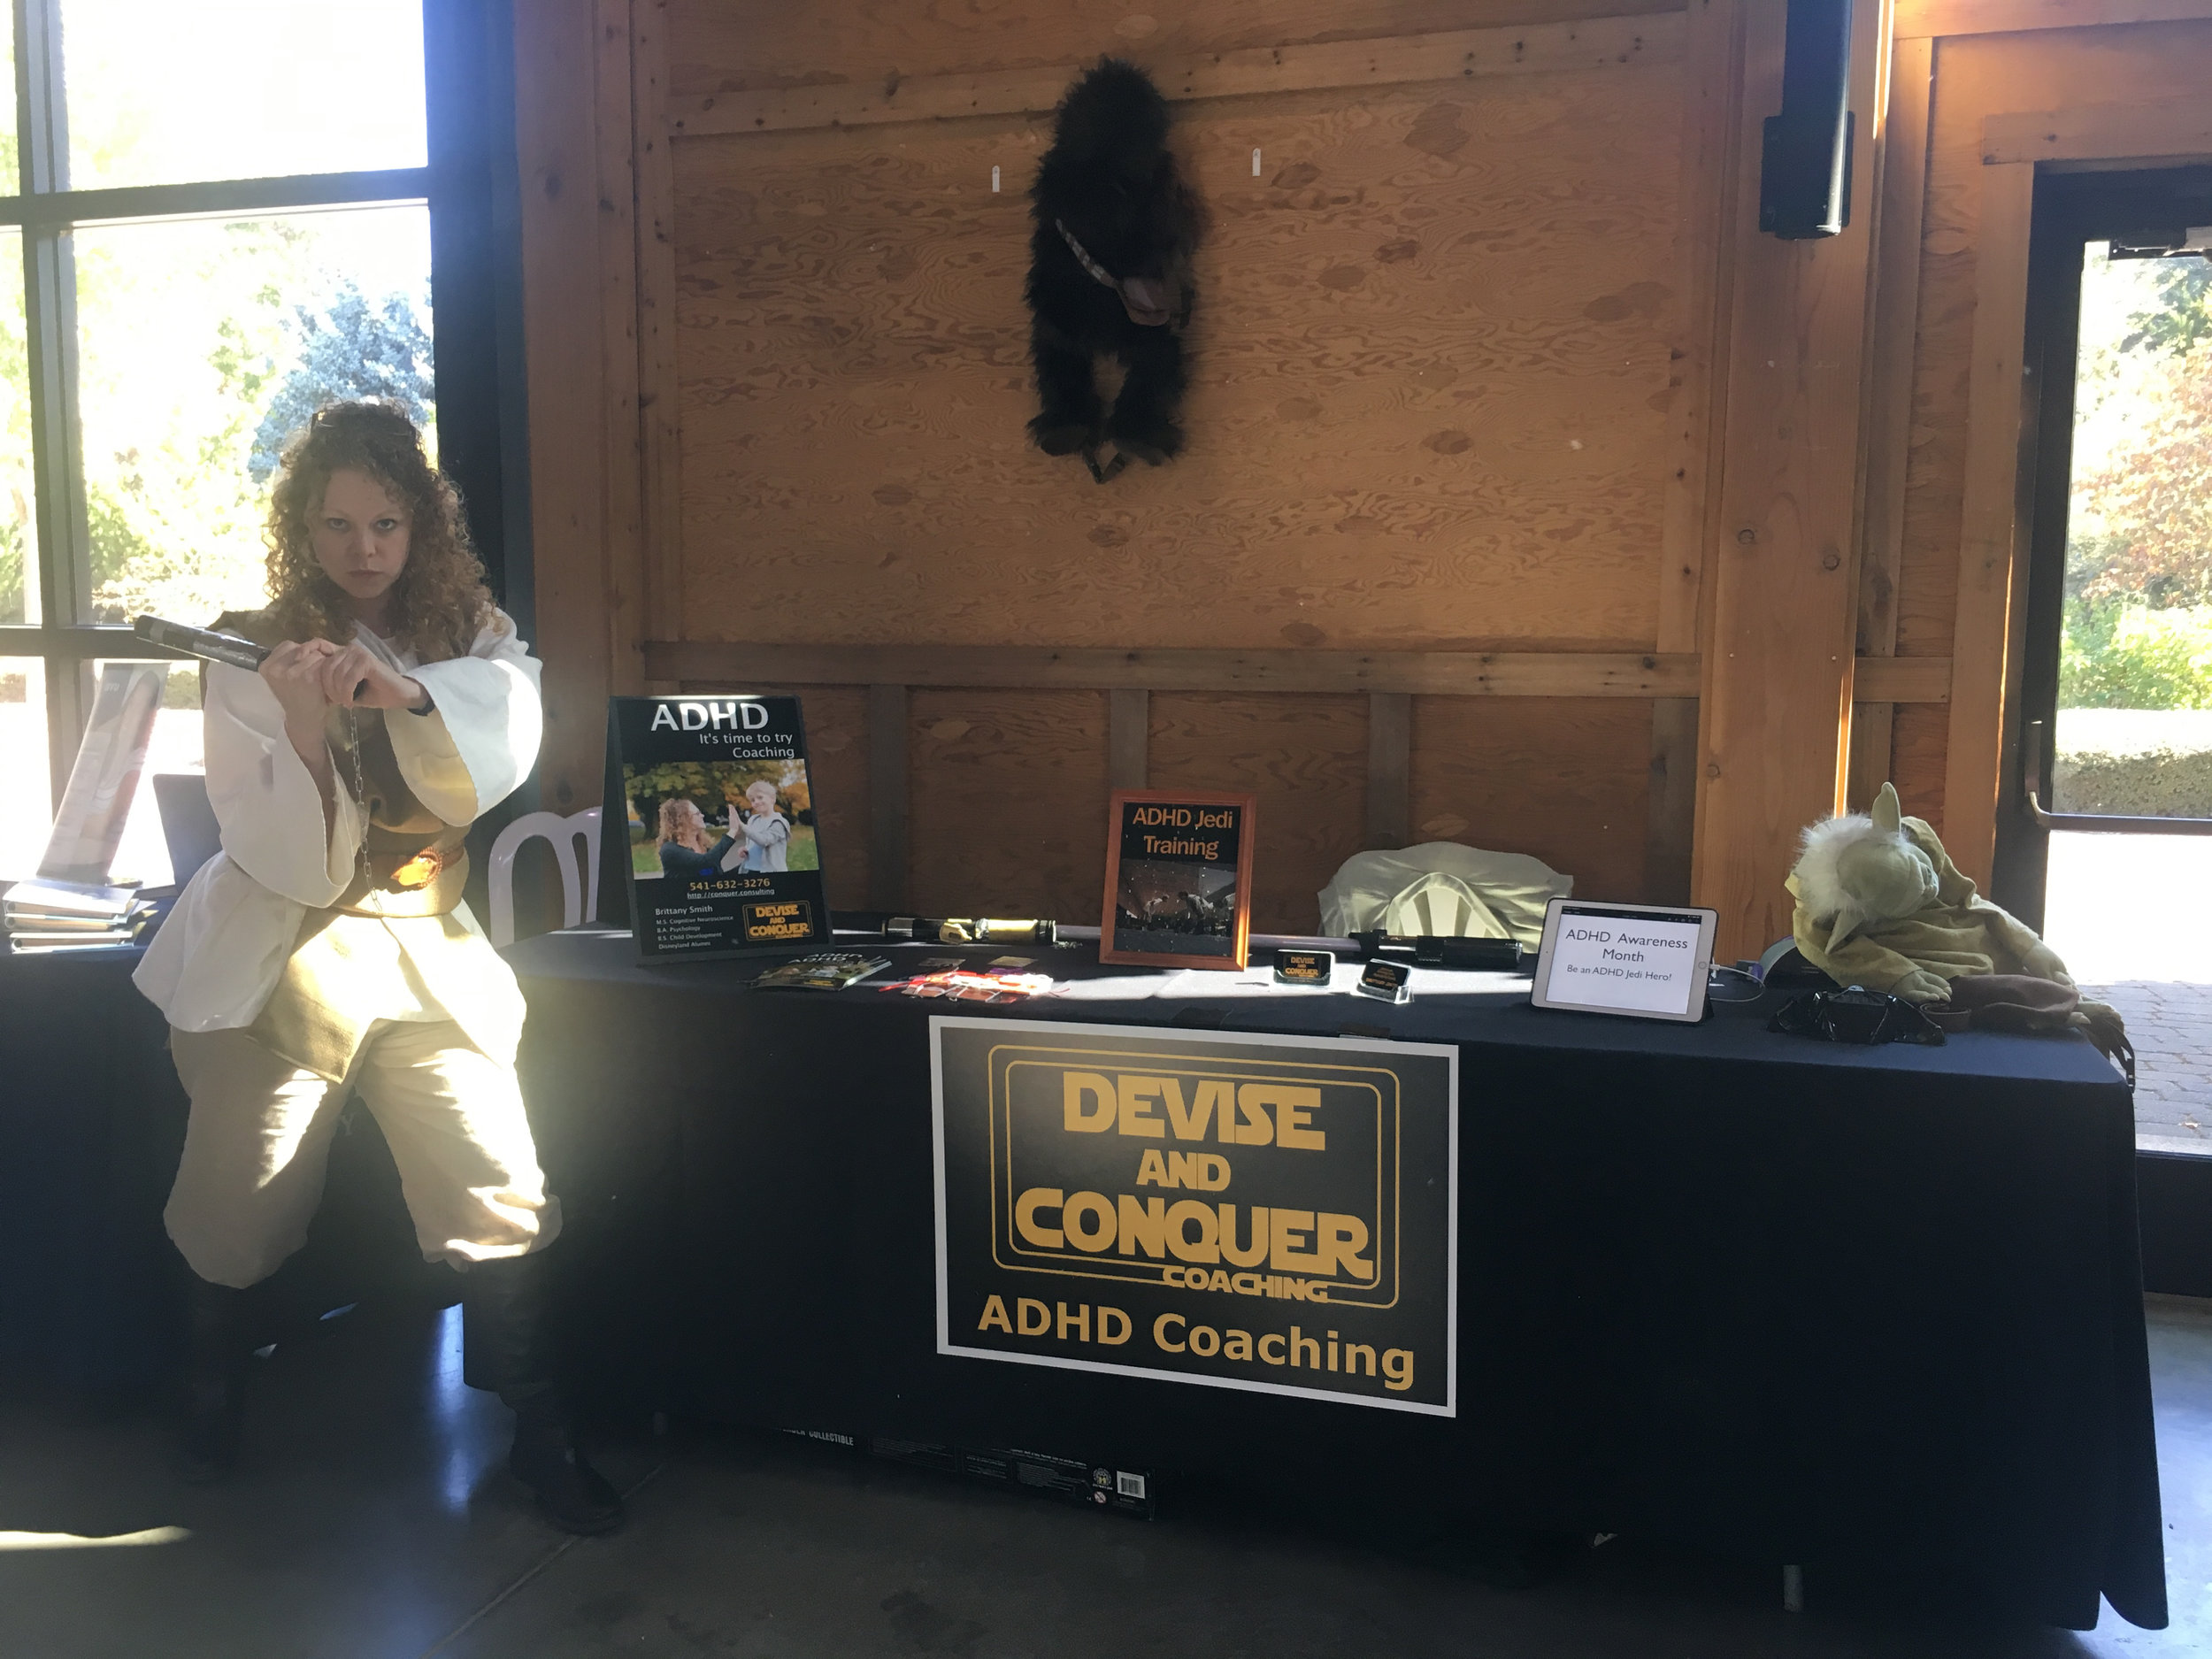 Brittany the ADHD Coach, with Devise & Conquer booth at School Counselor's conference.jpg